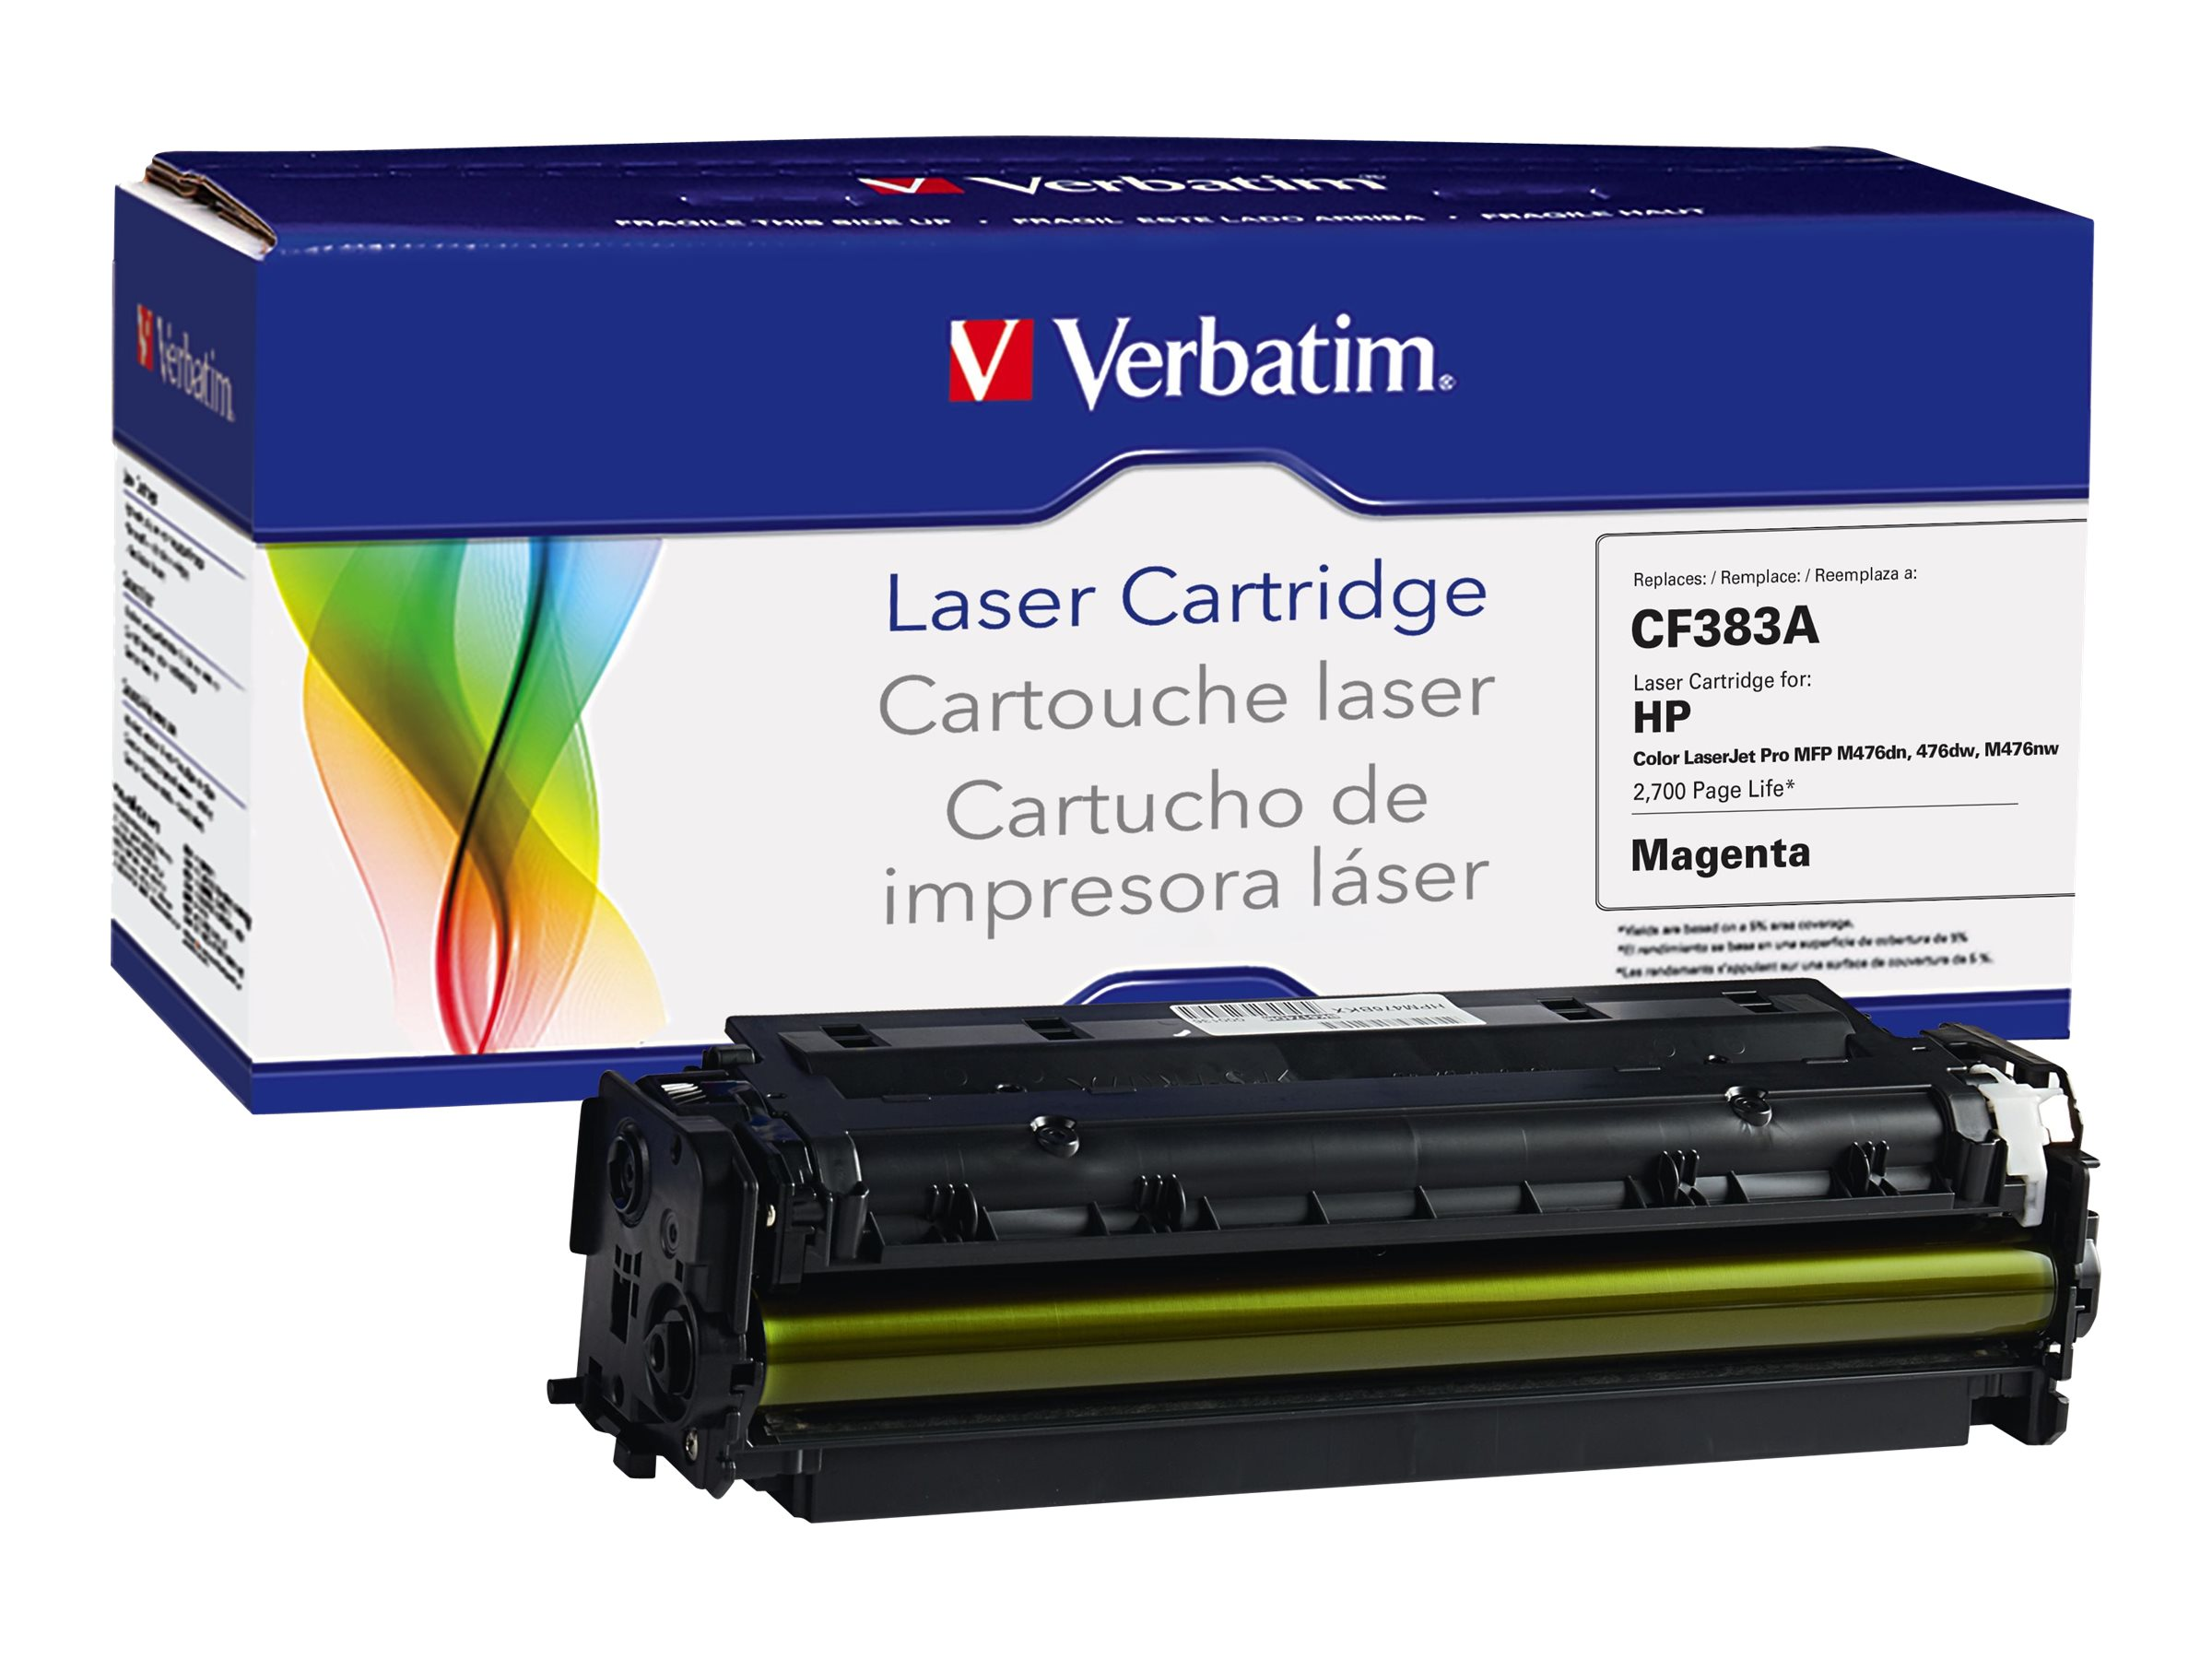 Verbatim CE283A Magenta Toner Cartridge for HP